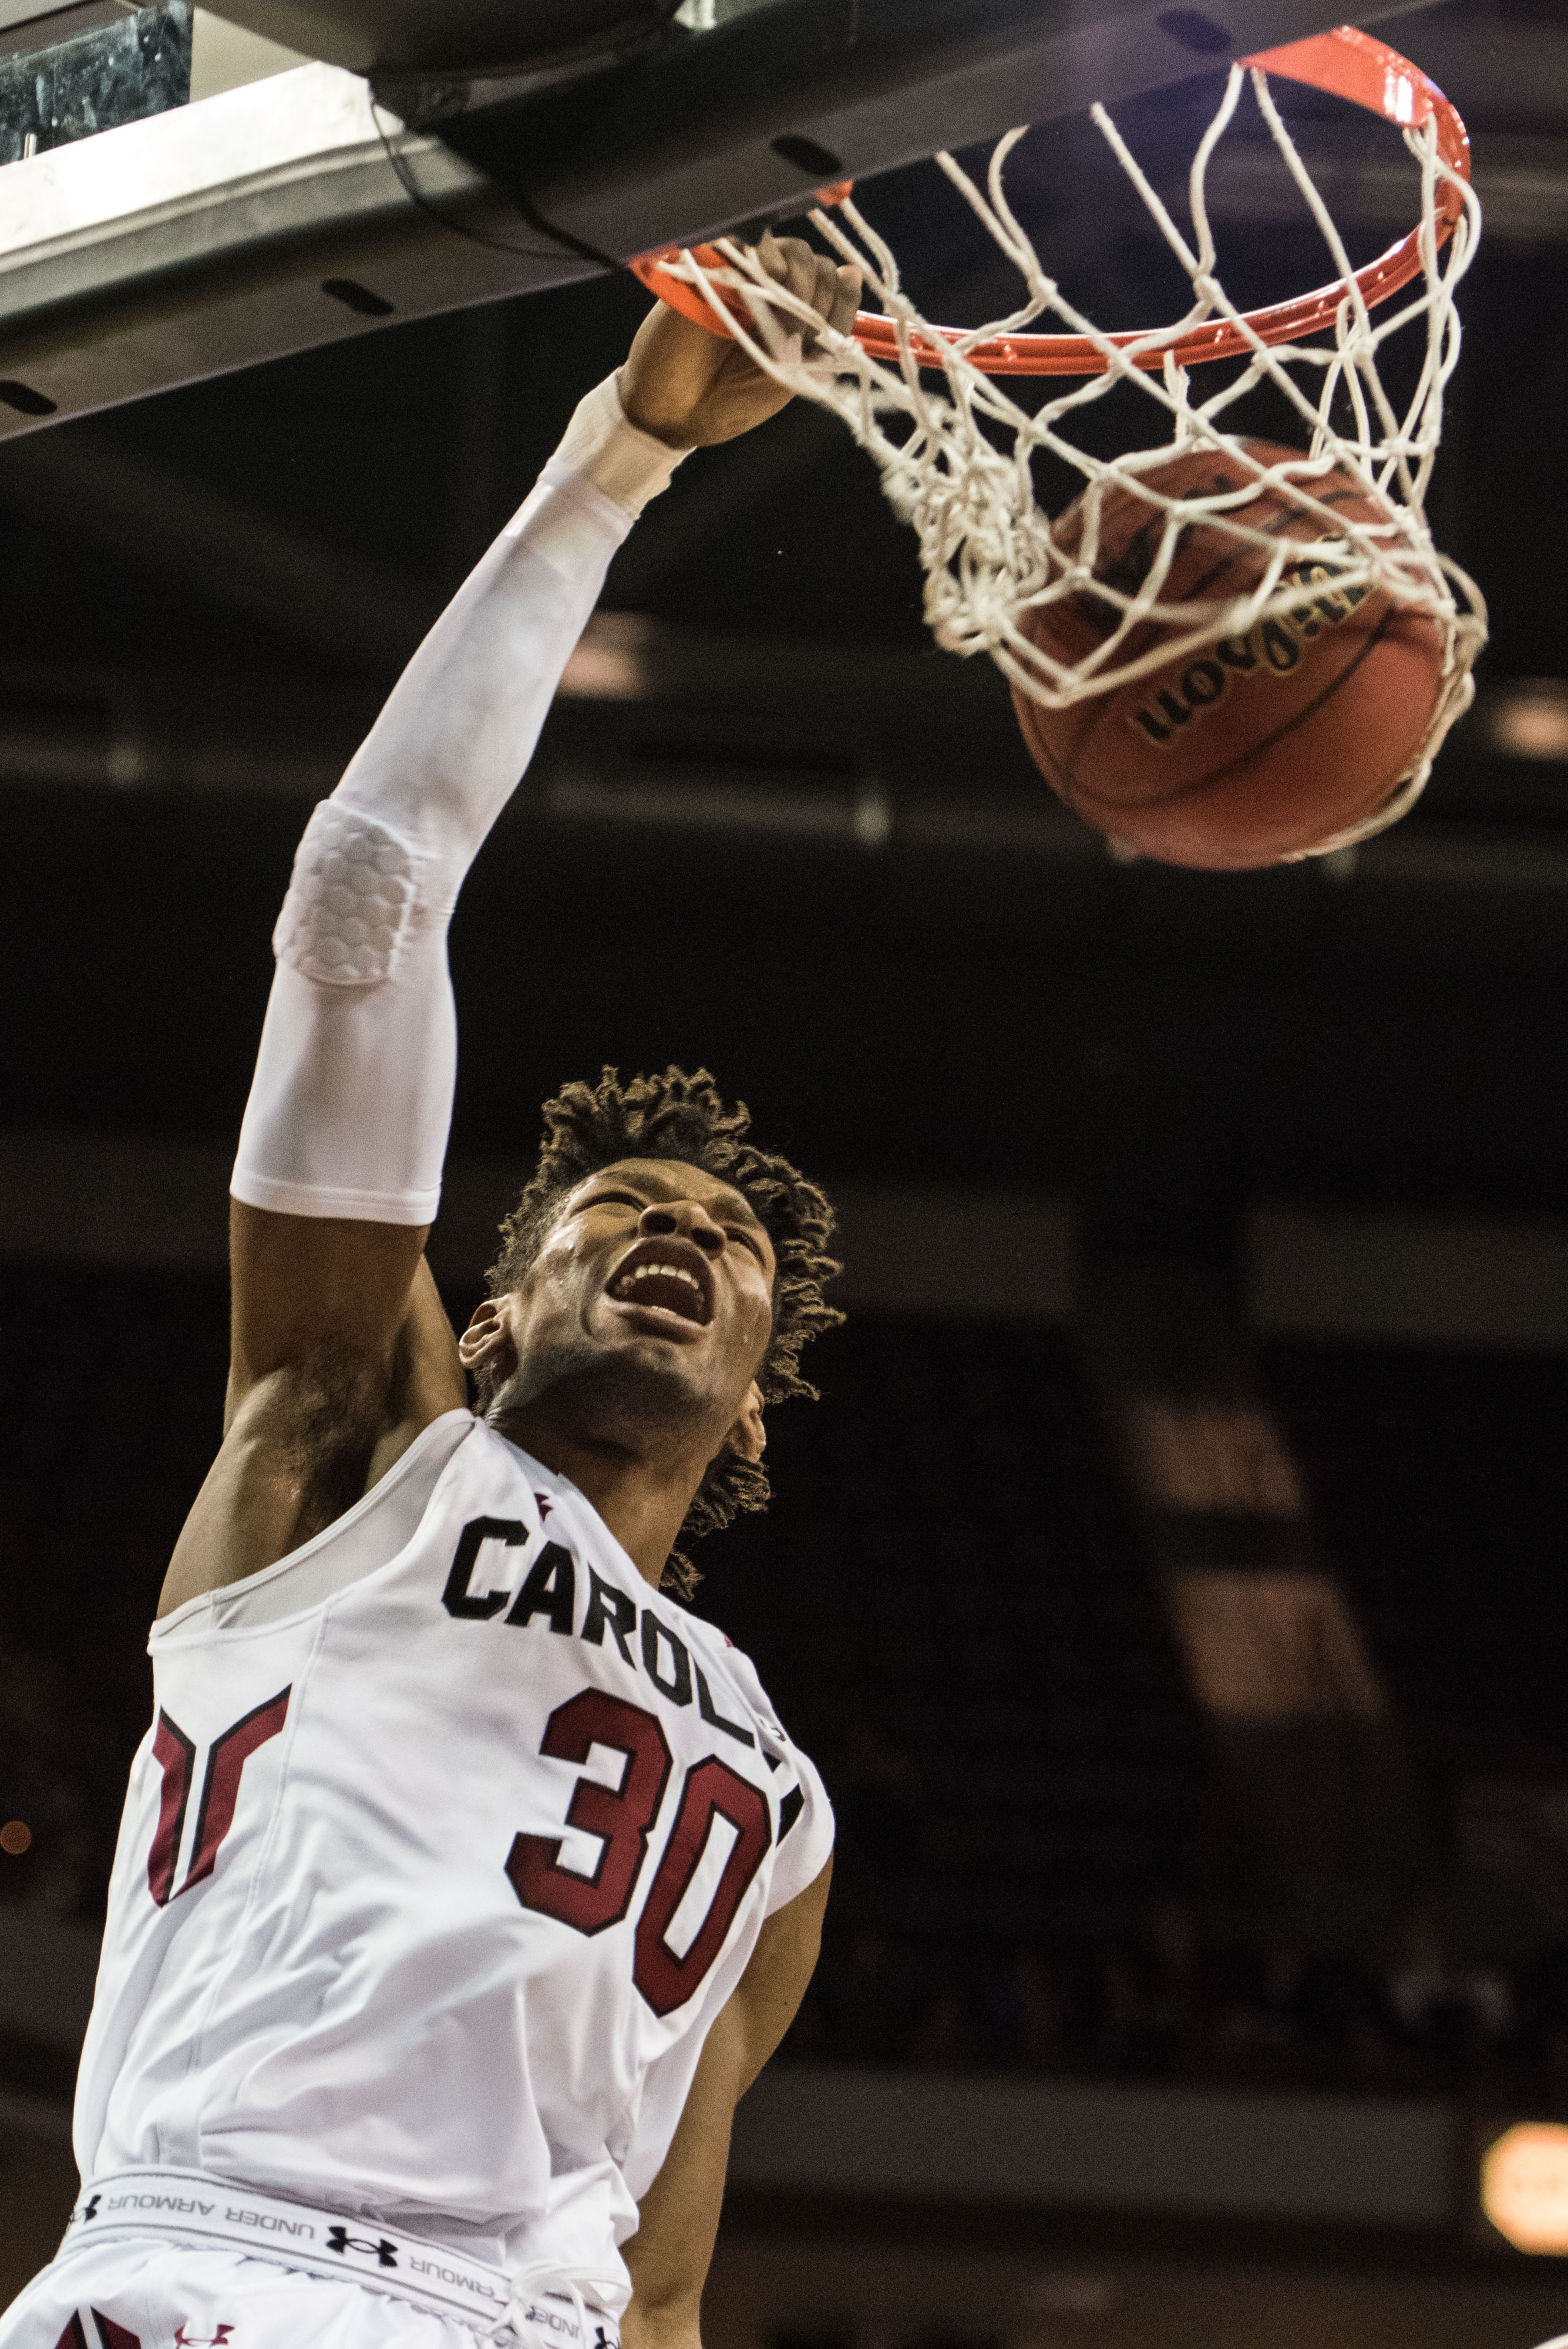 South Carolina forward Chris Silva dunks during the first half of the team's NCAA college basketball game against Francis Marion on Wednesday, Dec. 30, 2015, in Columbia, S.C. (AP Photo/Sean Rayford)